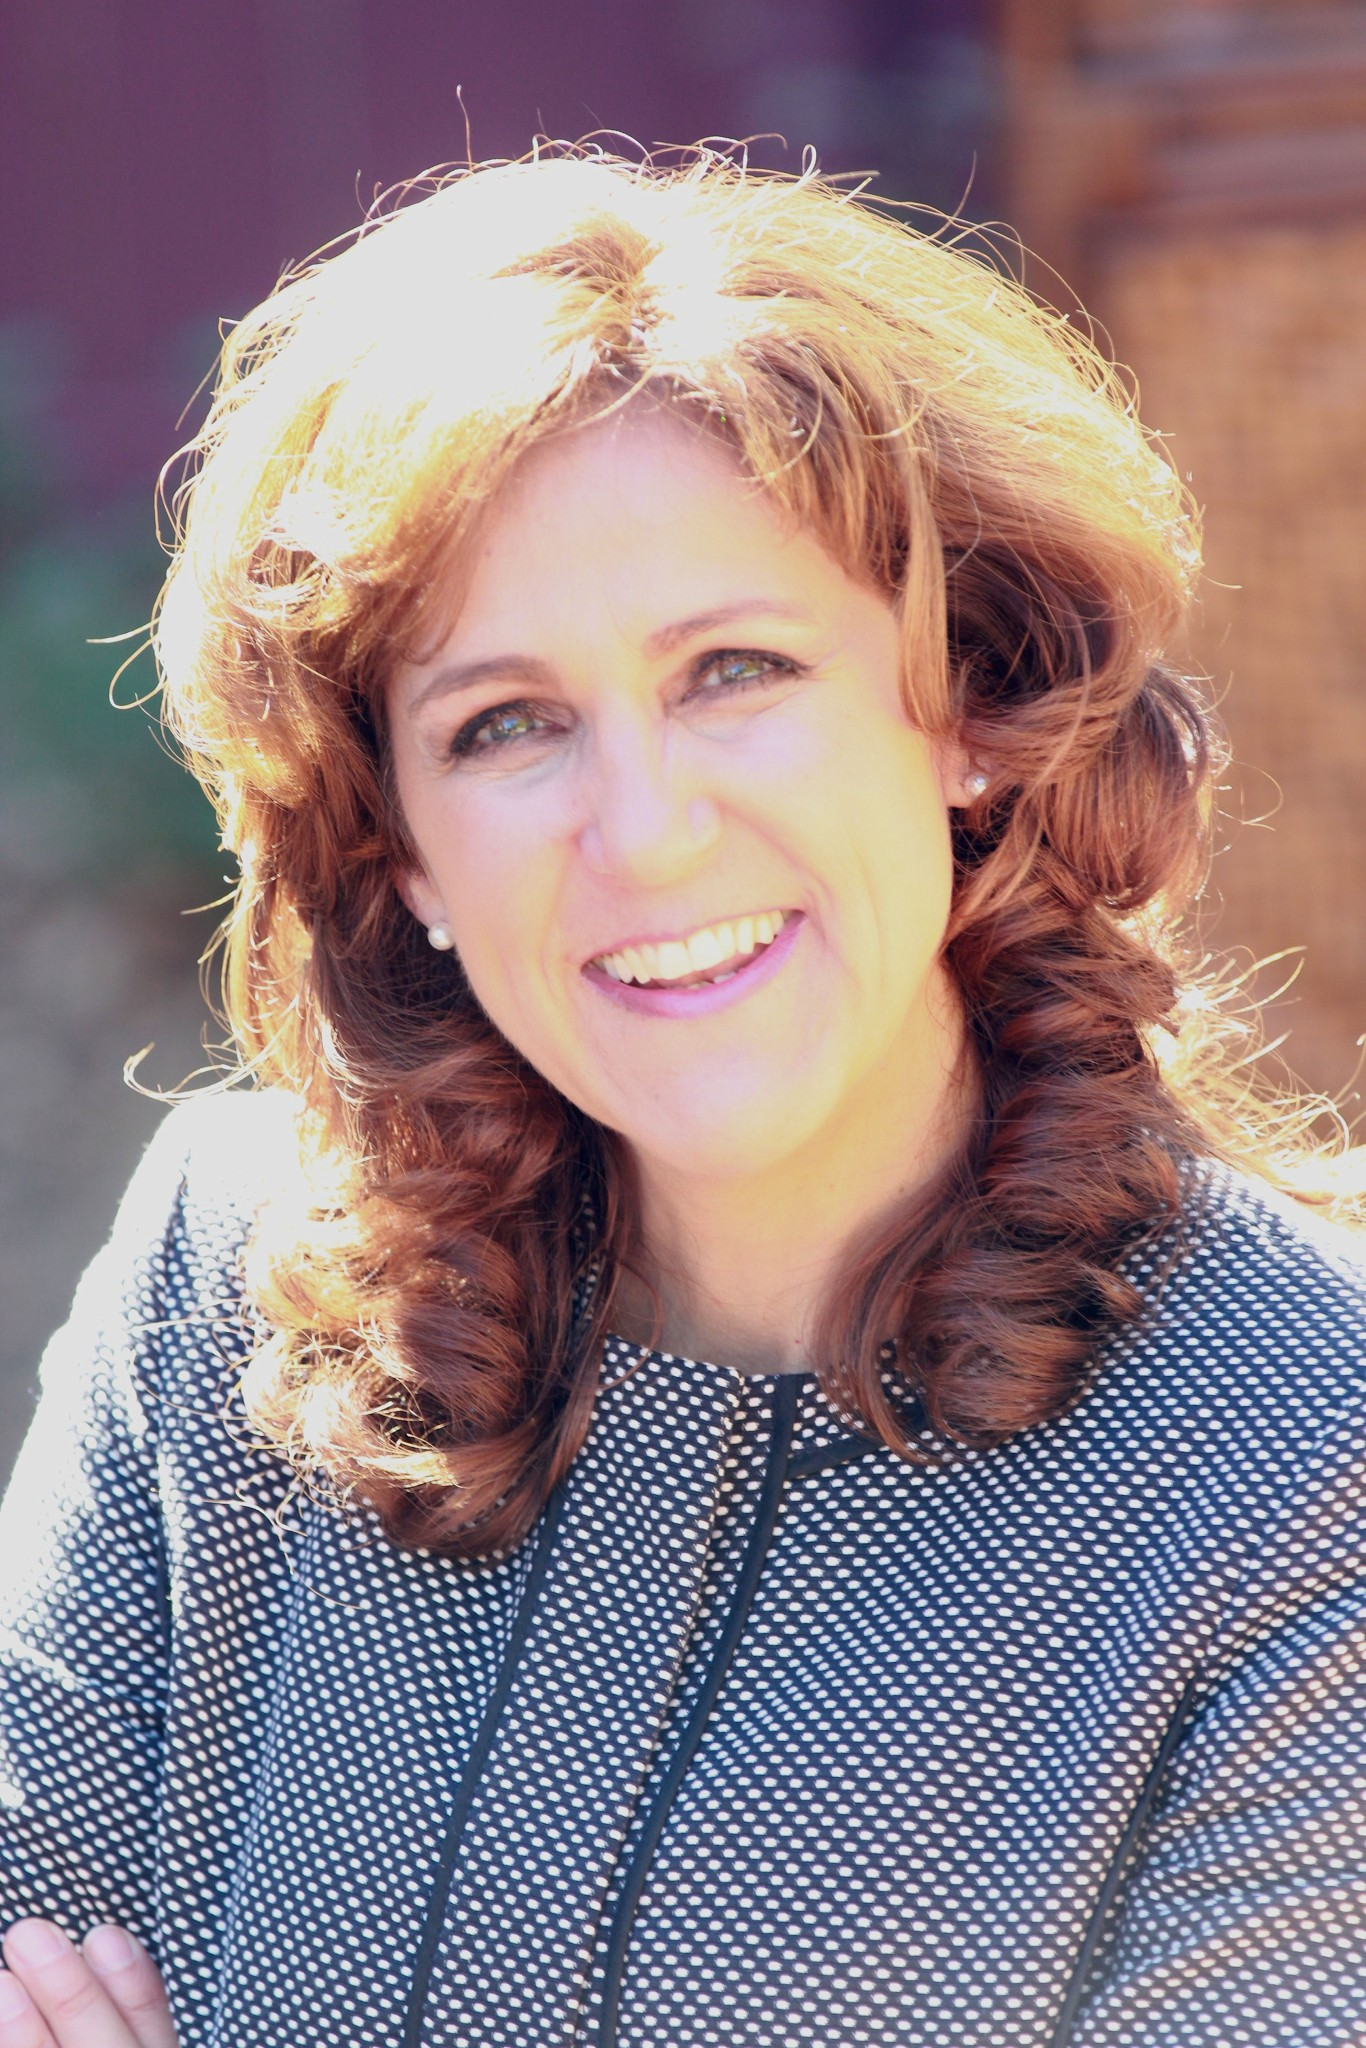 Diane kucala blueprint leadership diane kucala was born and raised in the twin cities of minnesota she believes that the keys to a happy and fulfilled life are a values based character malvernweather Images